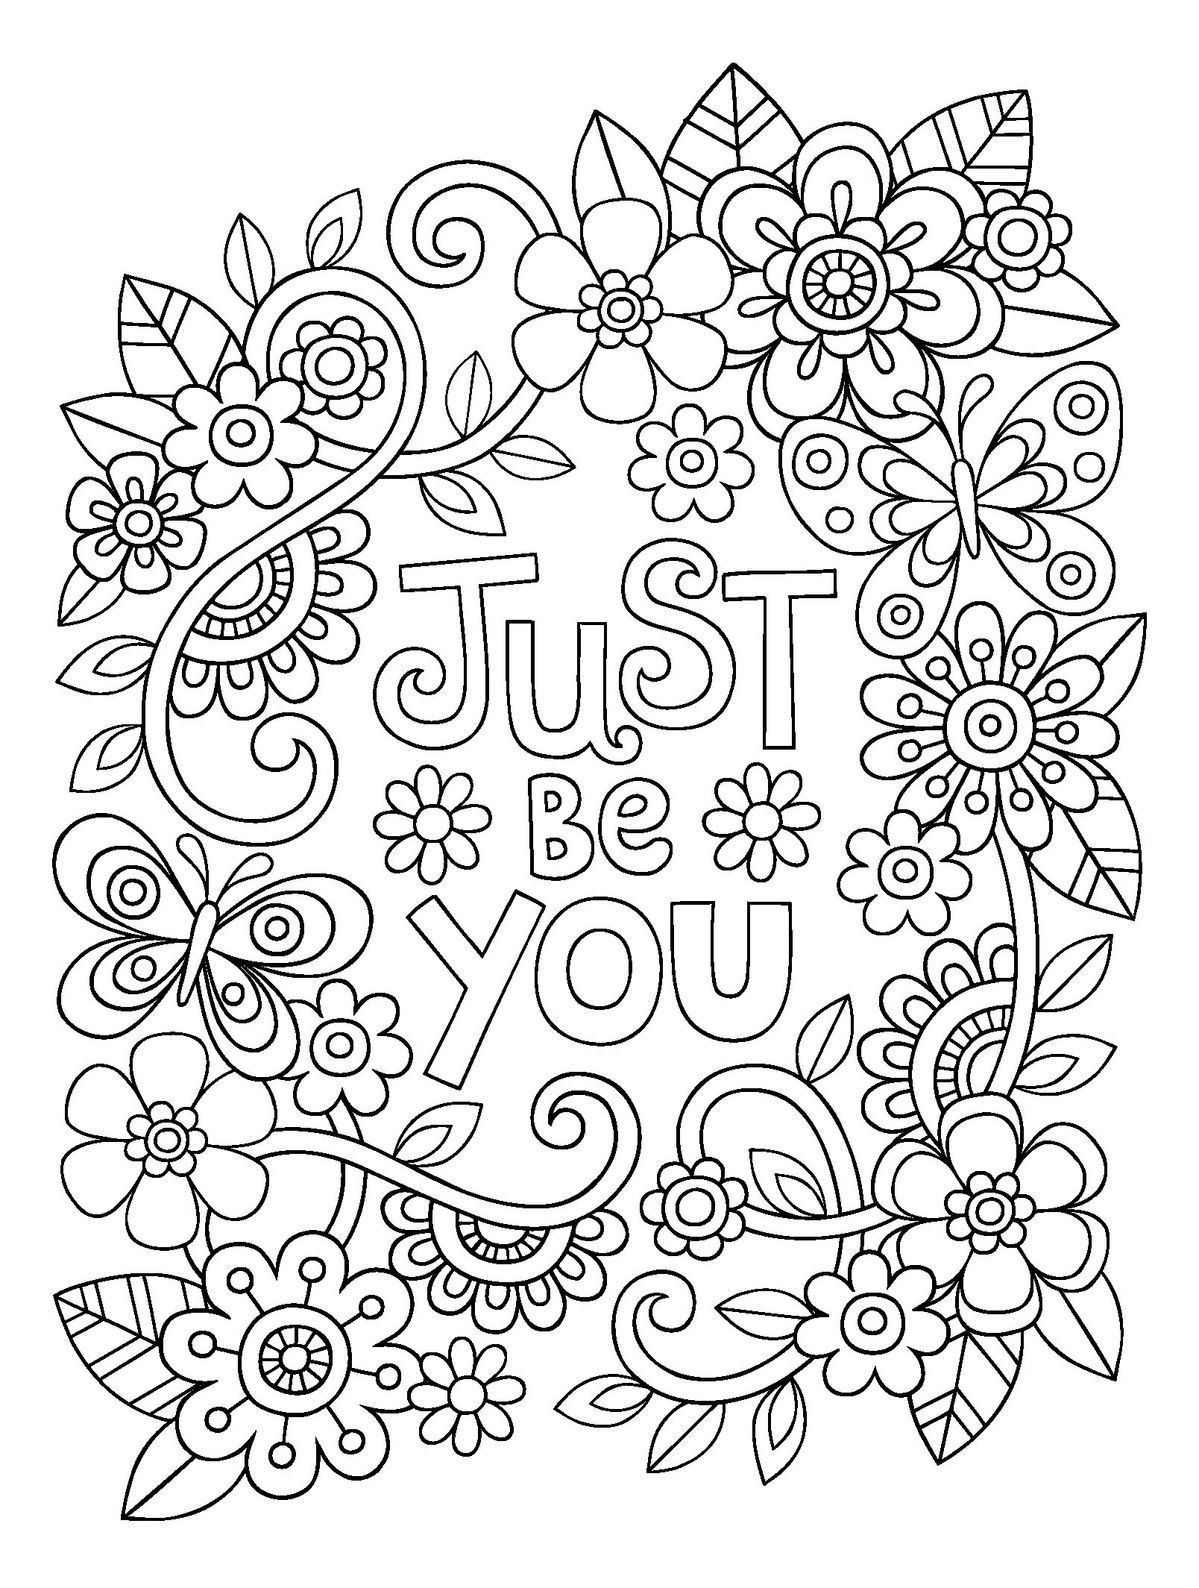 - Pin By Shrashti Gupta On Coloring Pages Coloring Pages